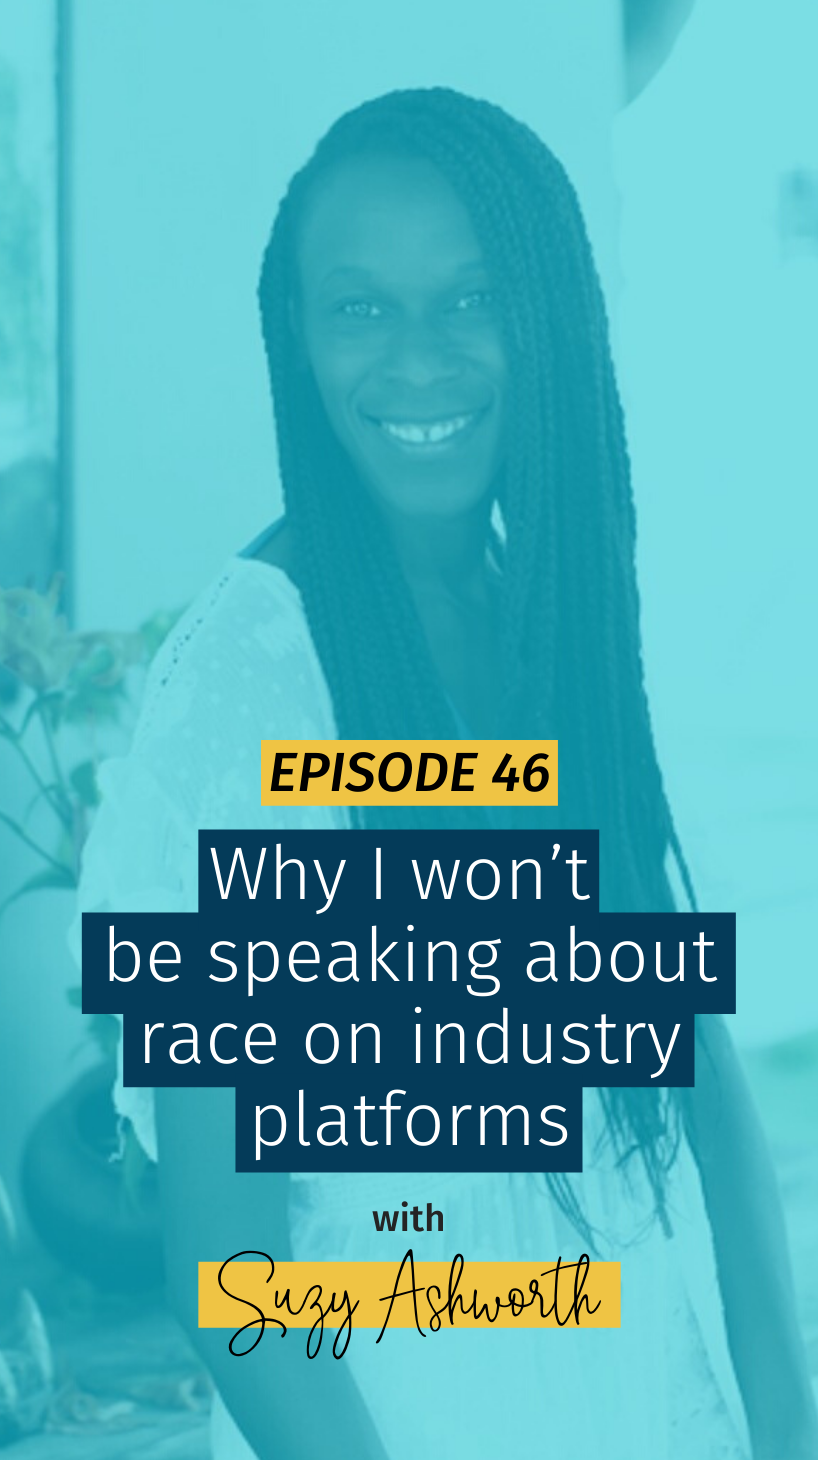 046 Why I won't be speaking about race on industry platforms